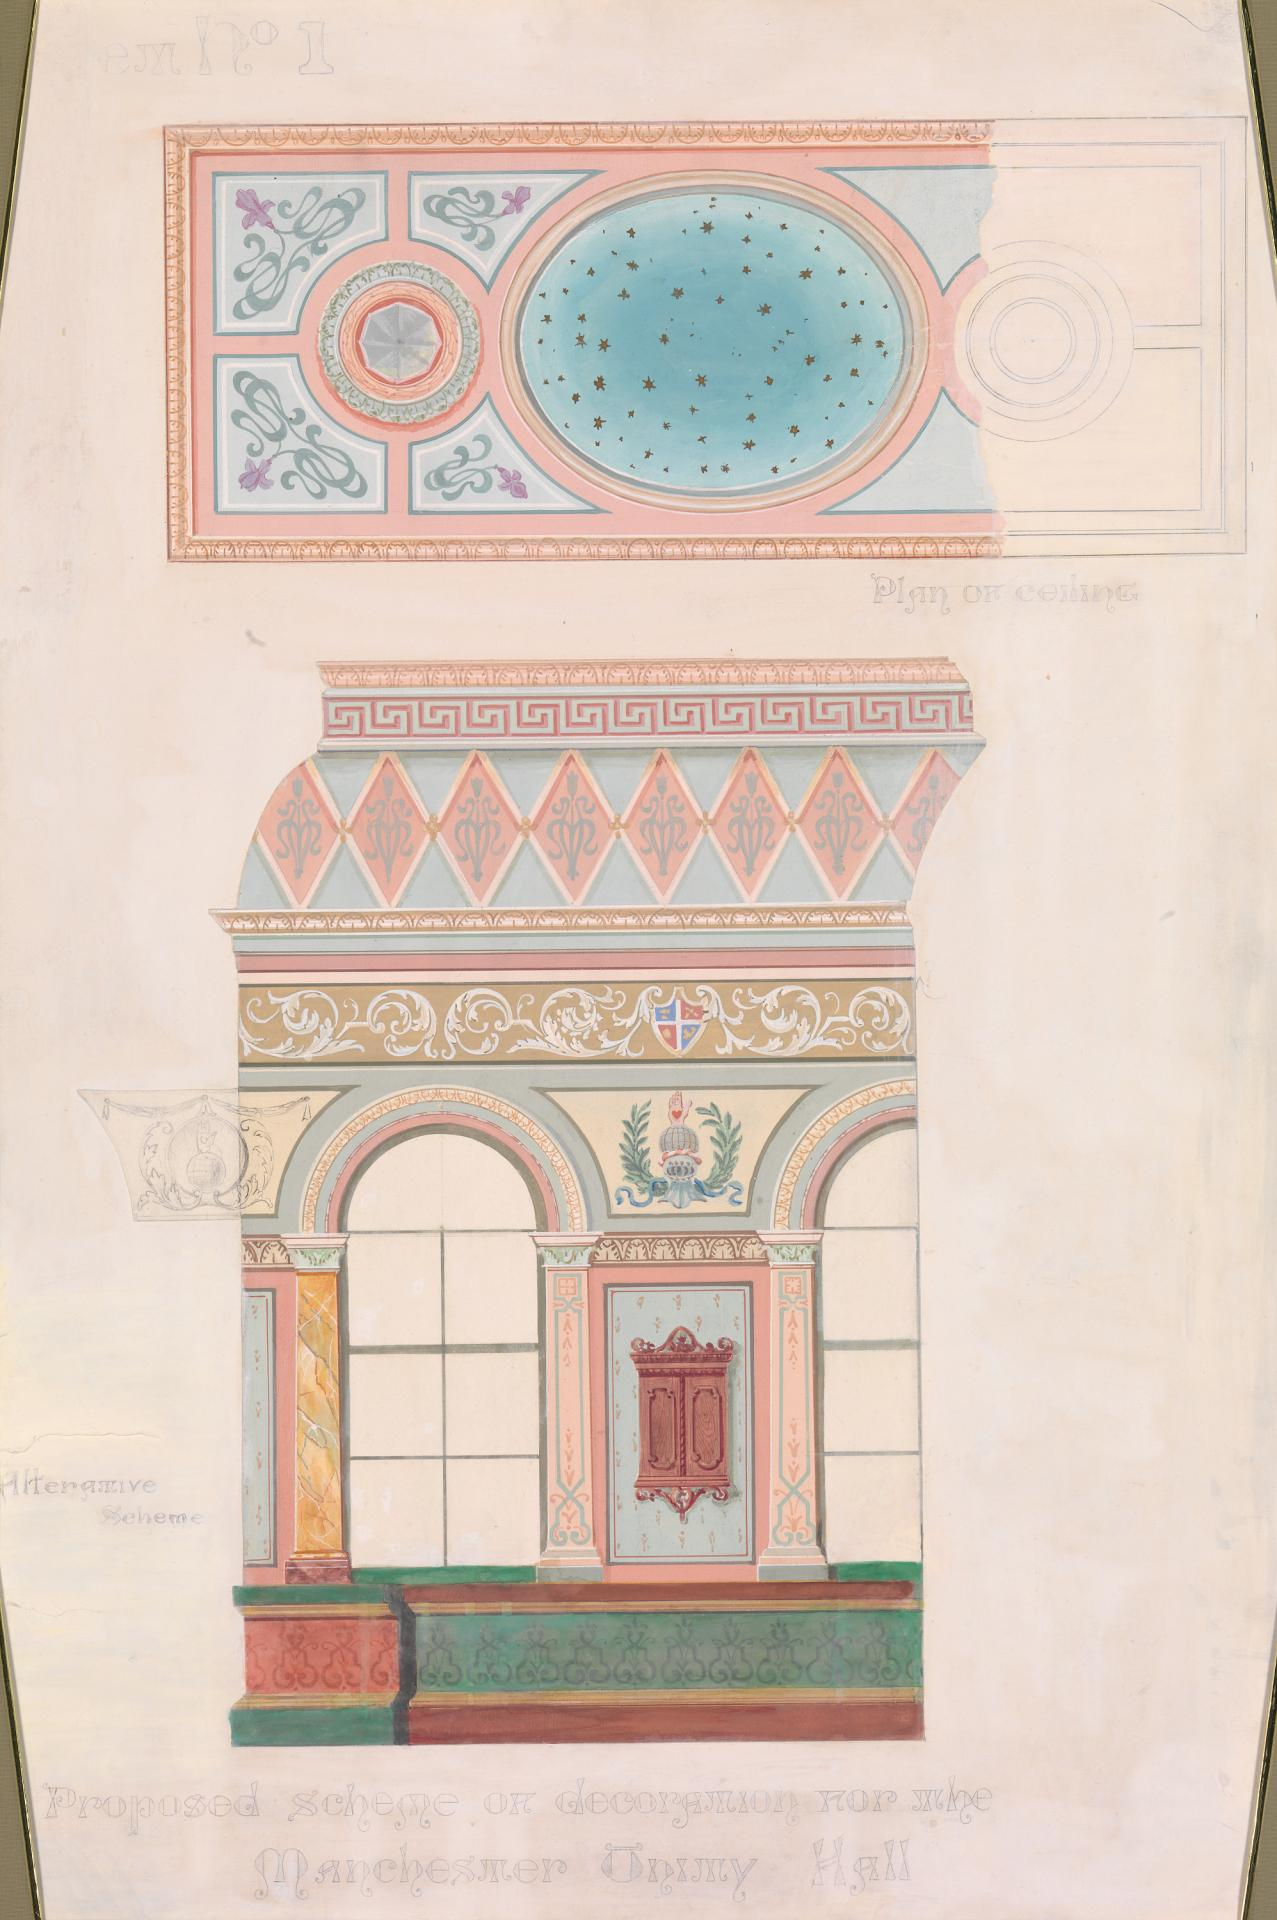 Proposed scheme of decoration for the Manchester Unity Hall, sheet no. 1